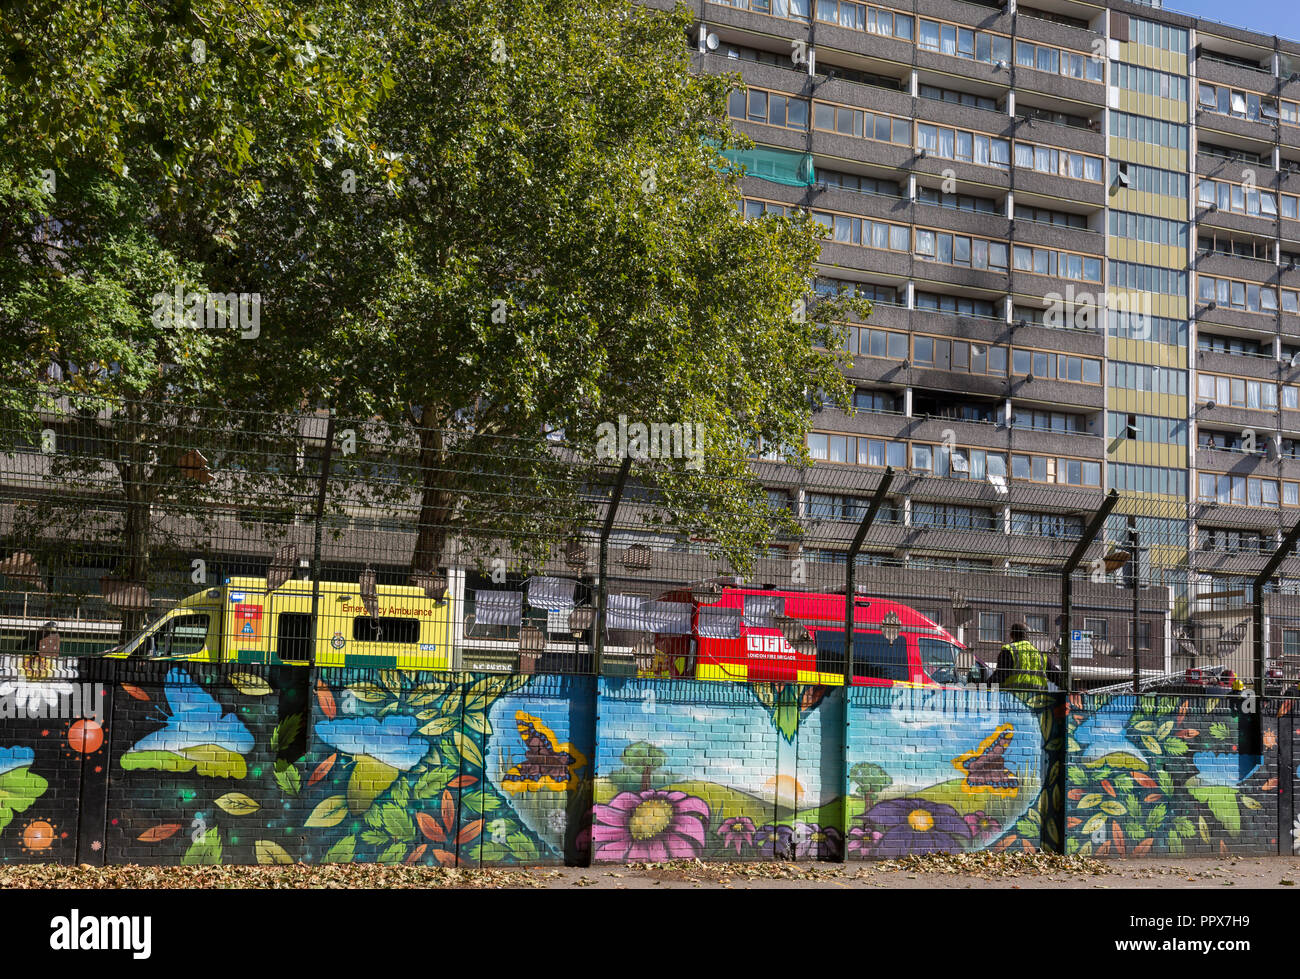 Emergency Services vehicles are parked by a basketball court in the aftermath of a flat fire in one of the two Wendover blocks in Alsace Road on the Aylesbury Estate, Southwark SE17, on 24th September 2018, in London, England. Part of a split level flat on the fourth and fifth floor of the 15-storey block was damaged. One woman and two children left the property before the Brigade arrived. They were treated at the scene for smoke inhalation by London Ambulance Service crews and taken too hospital. Another man was also treated at the scene for smoke inhalation. - Stock Image